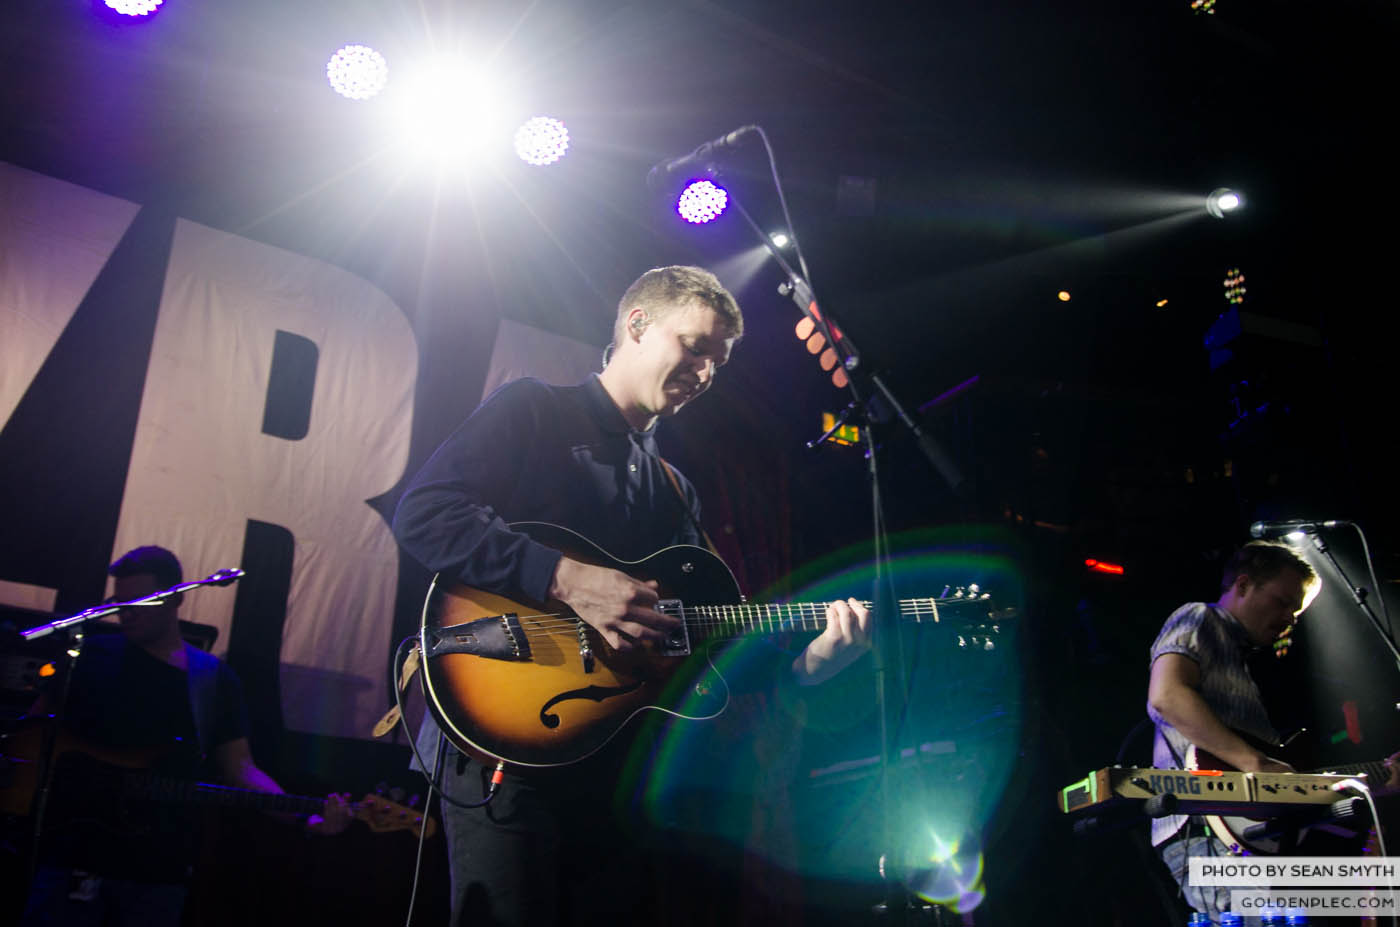 George Ezra at The Academy